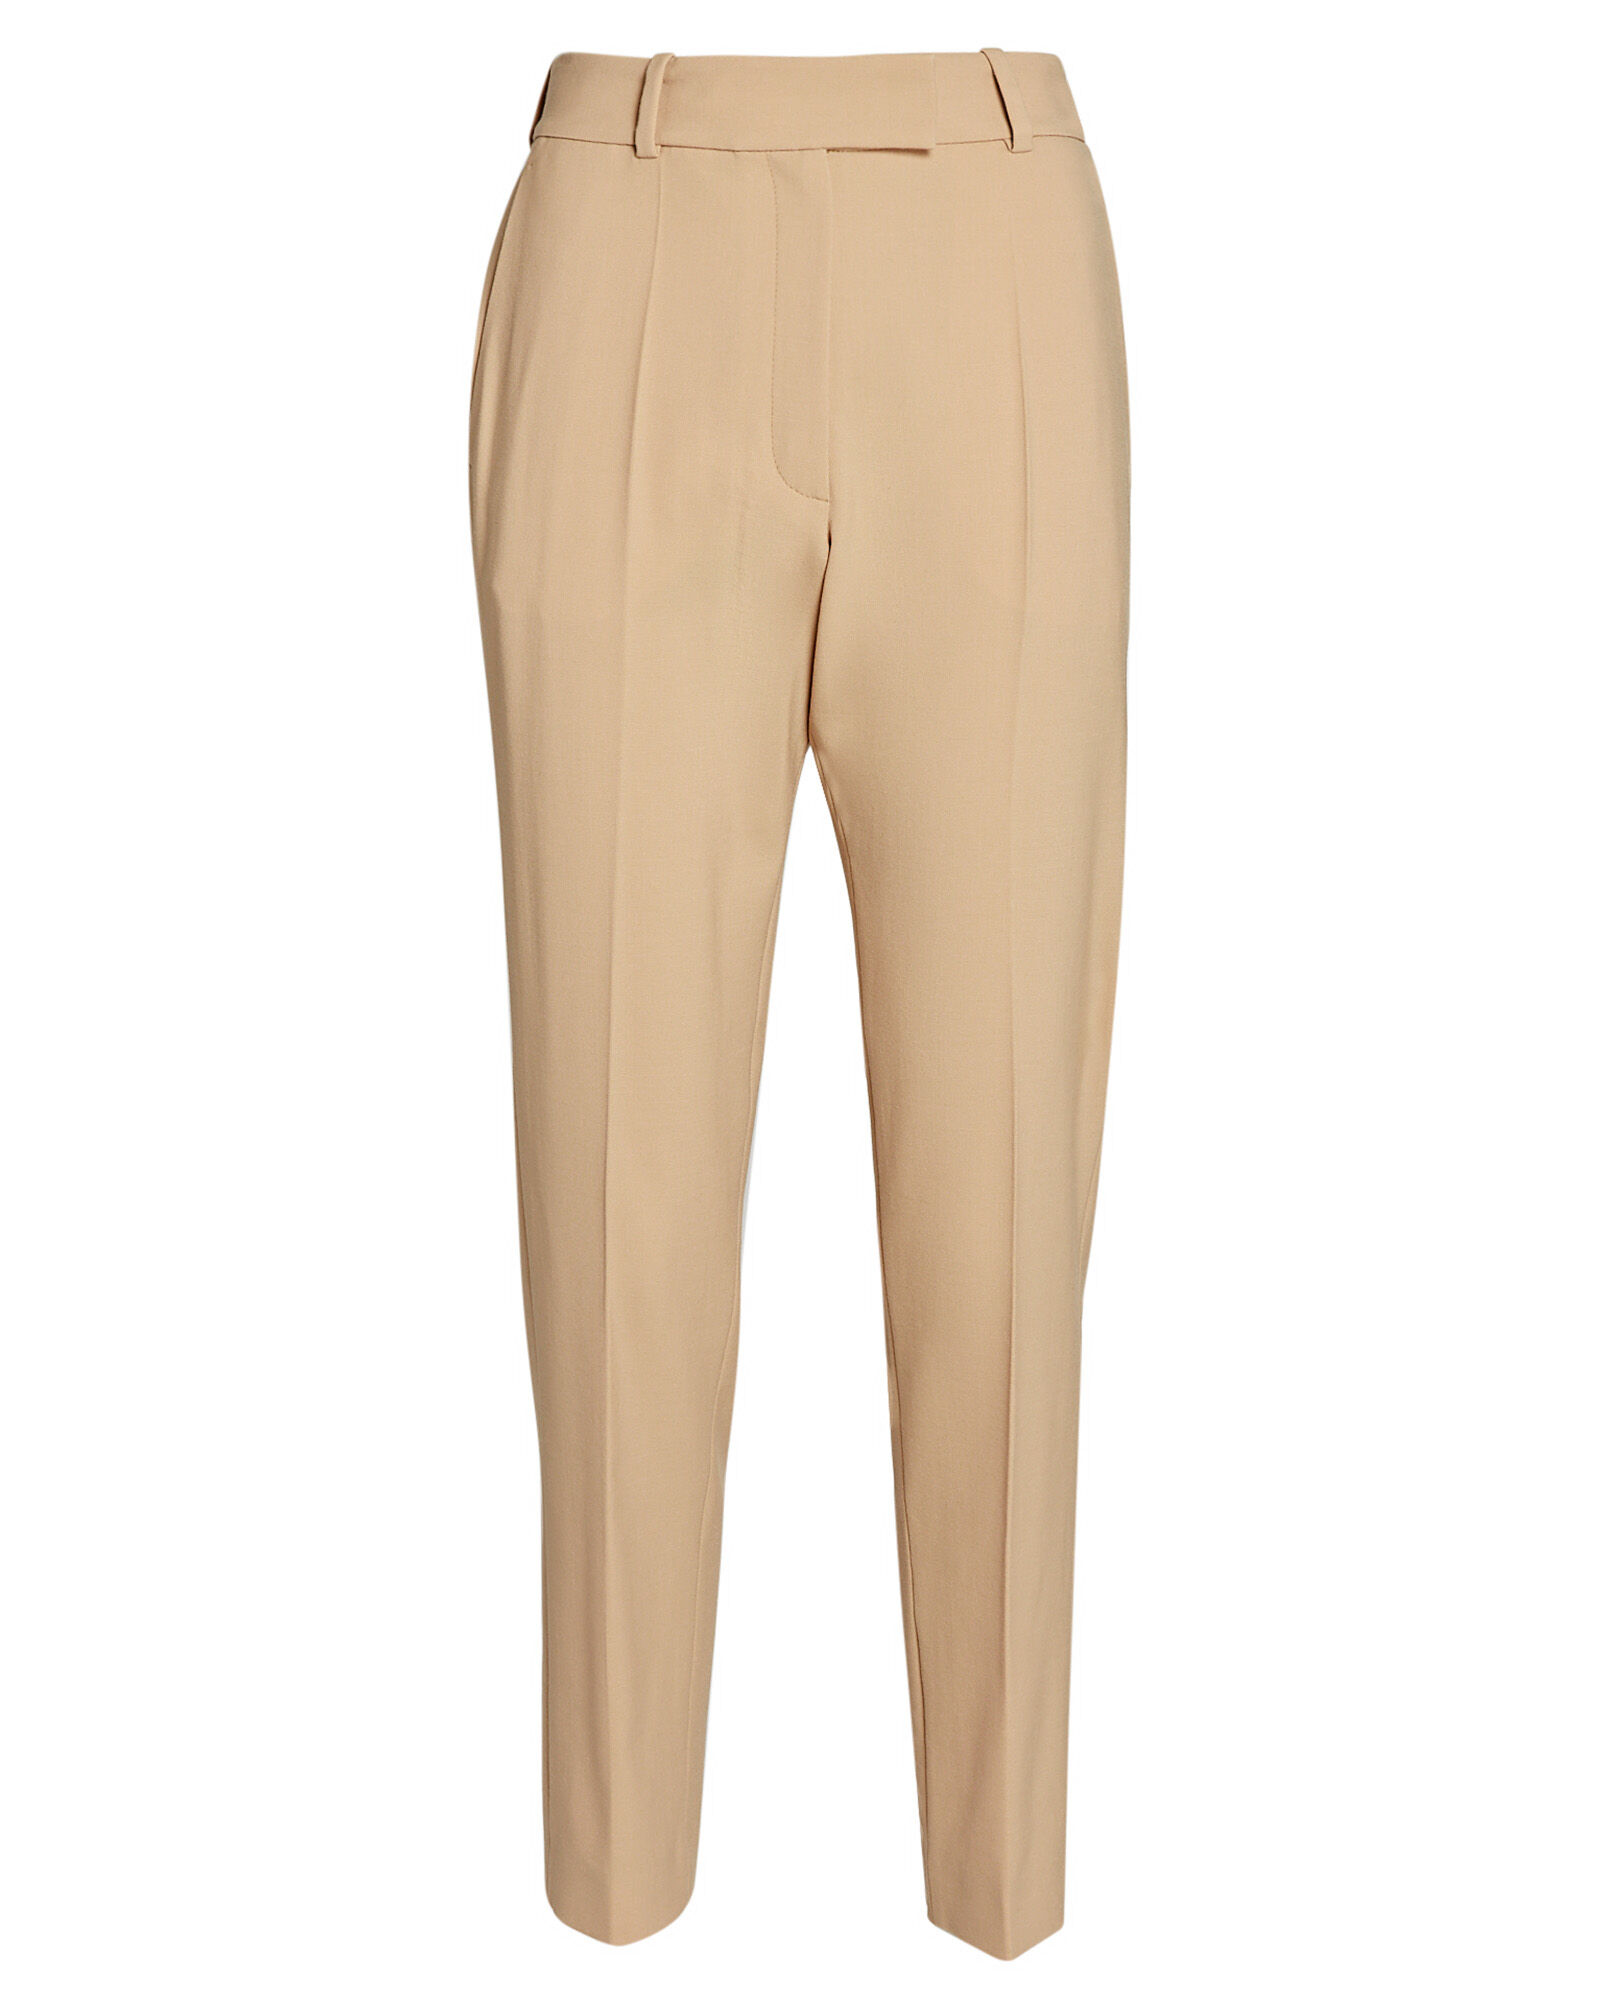 Oscar Tailored Trousers, BEIGE, hi-res